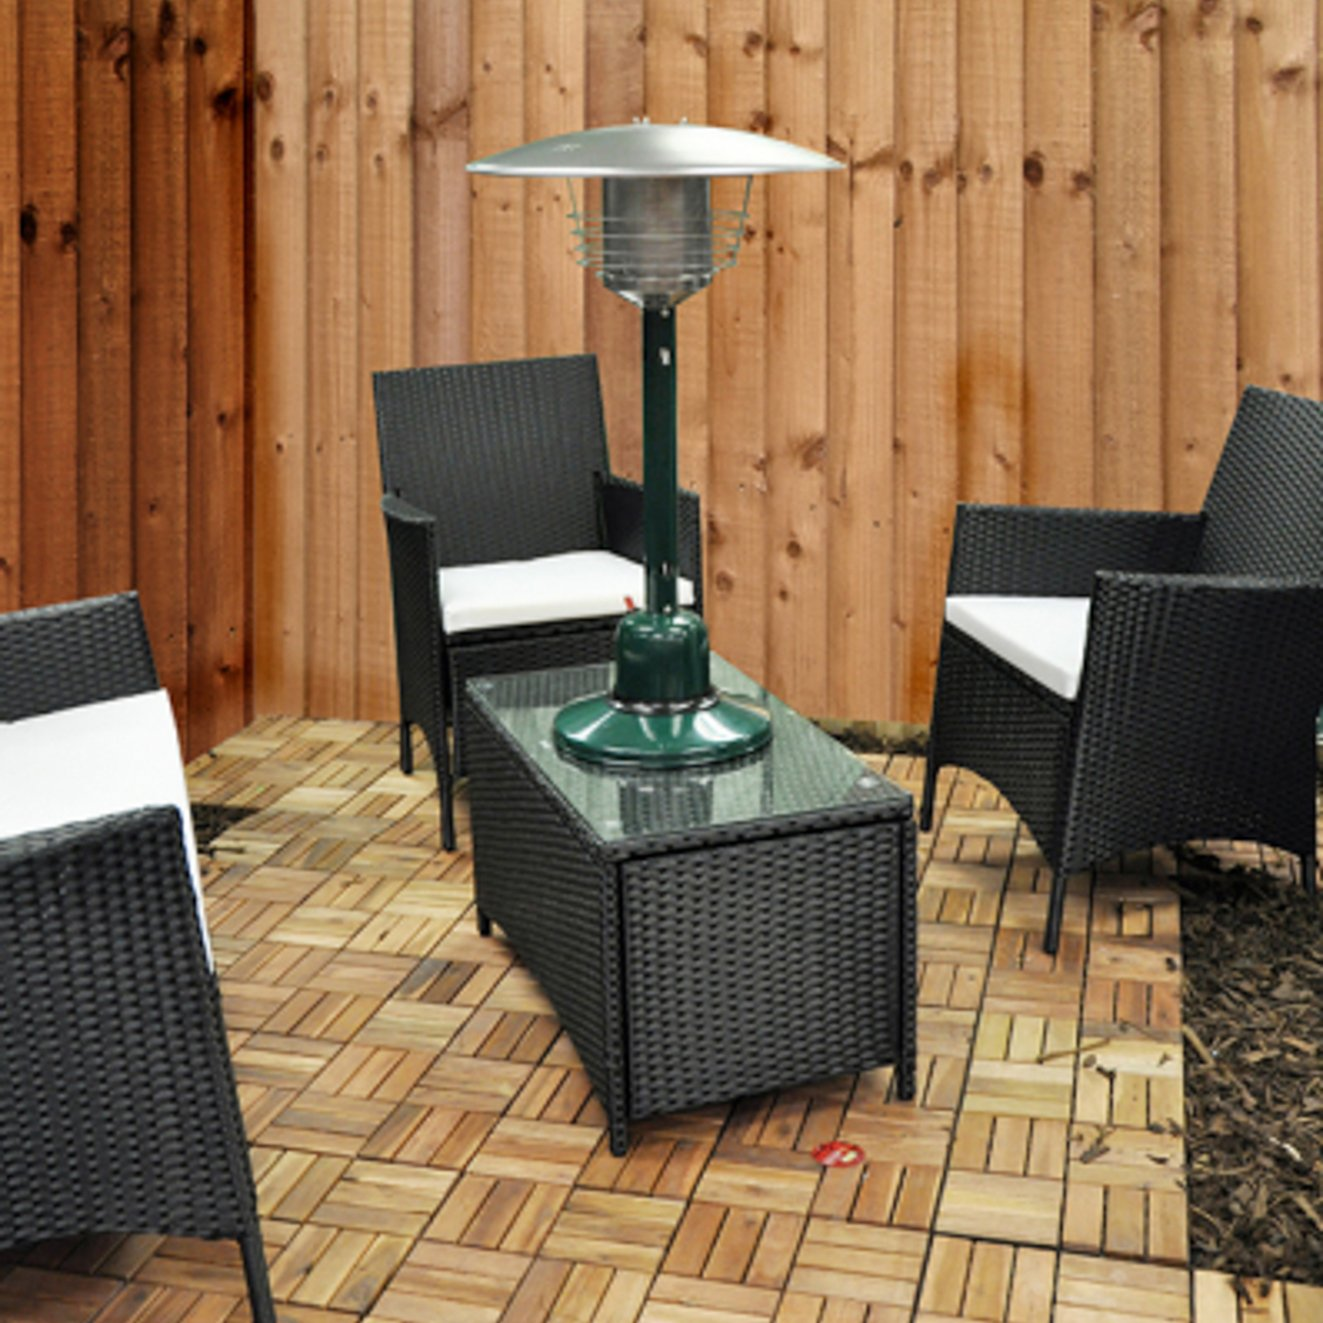 Patio Ideas Relaxed Tabletop Patio Heater B Tabletop